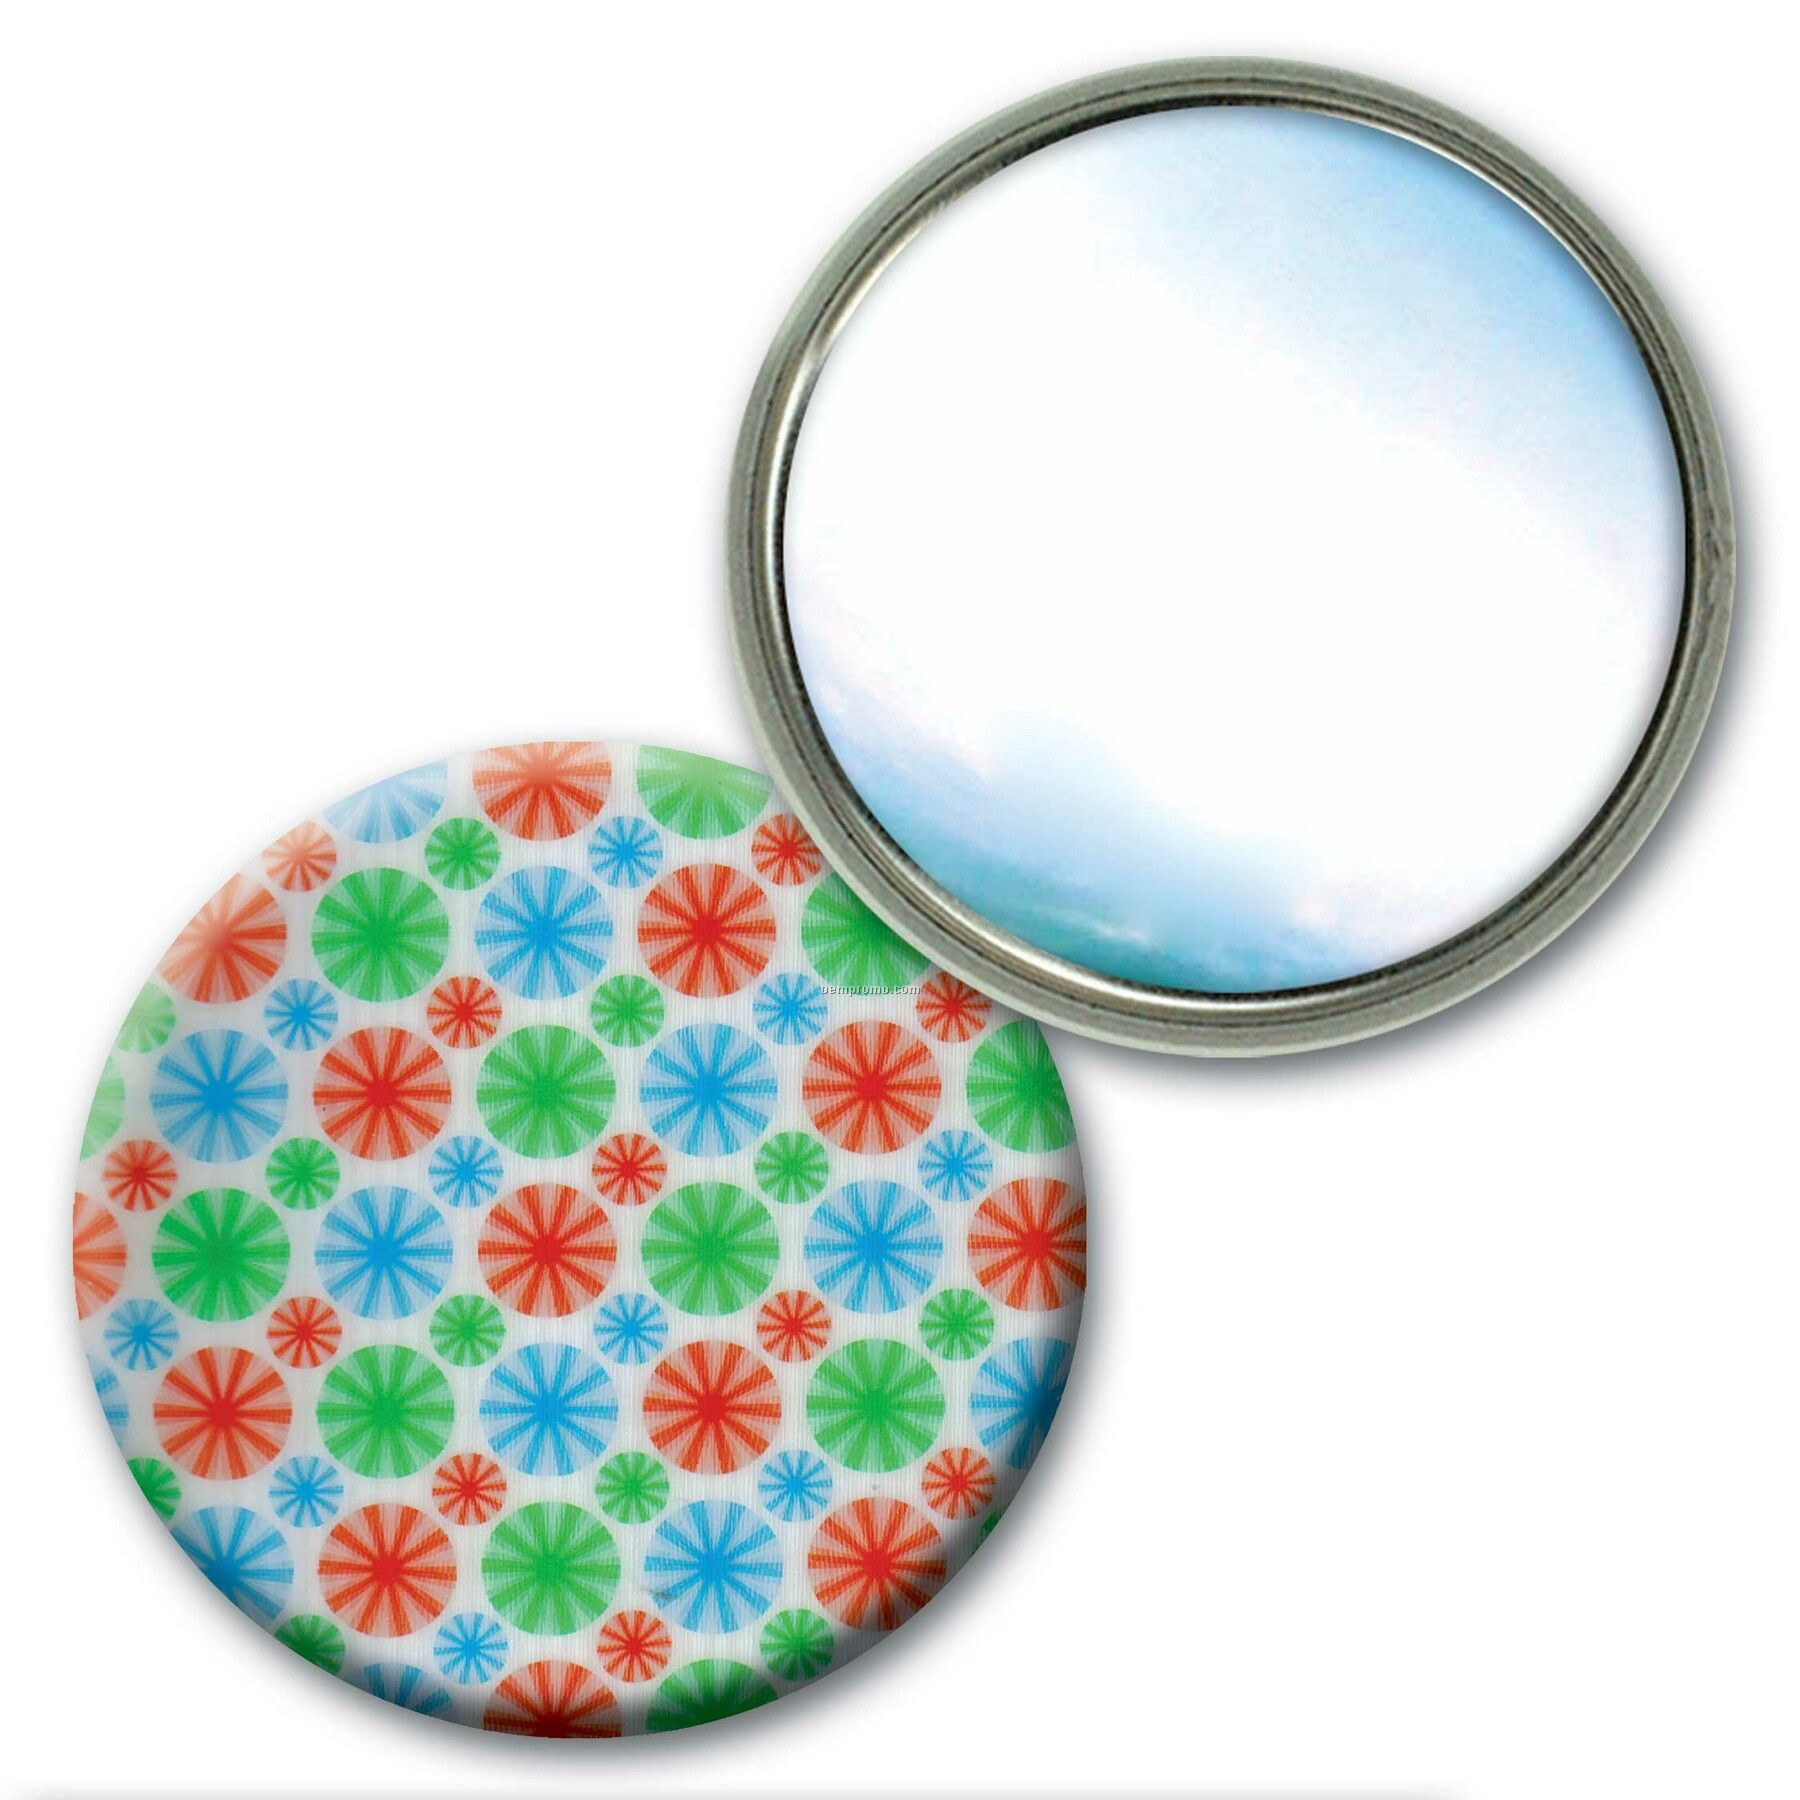 pact Mirror Lenticular Animated Wheels Effect Blank